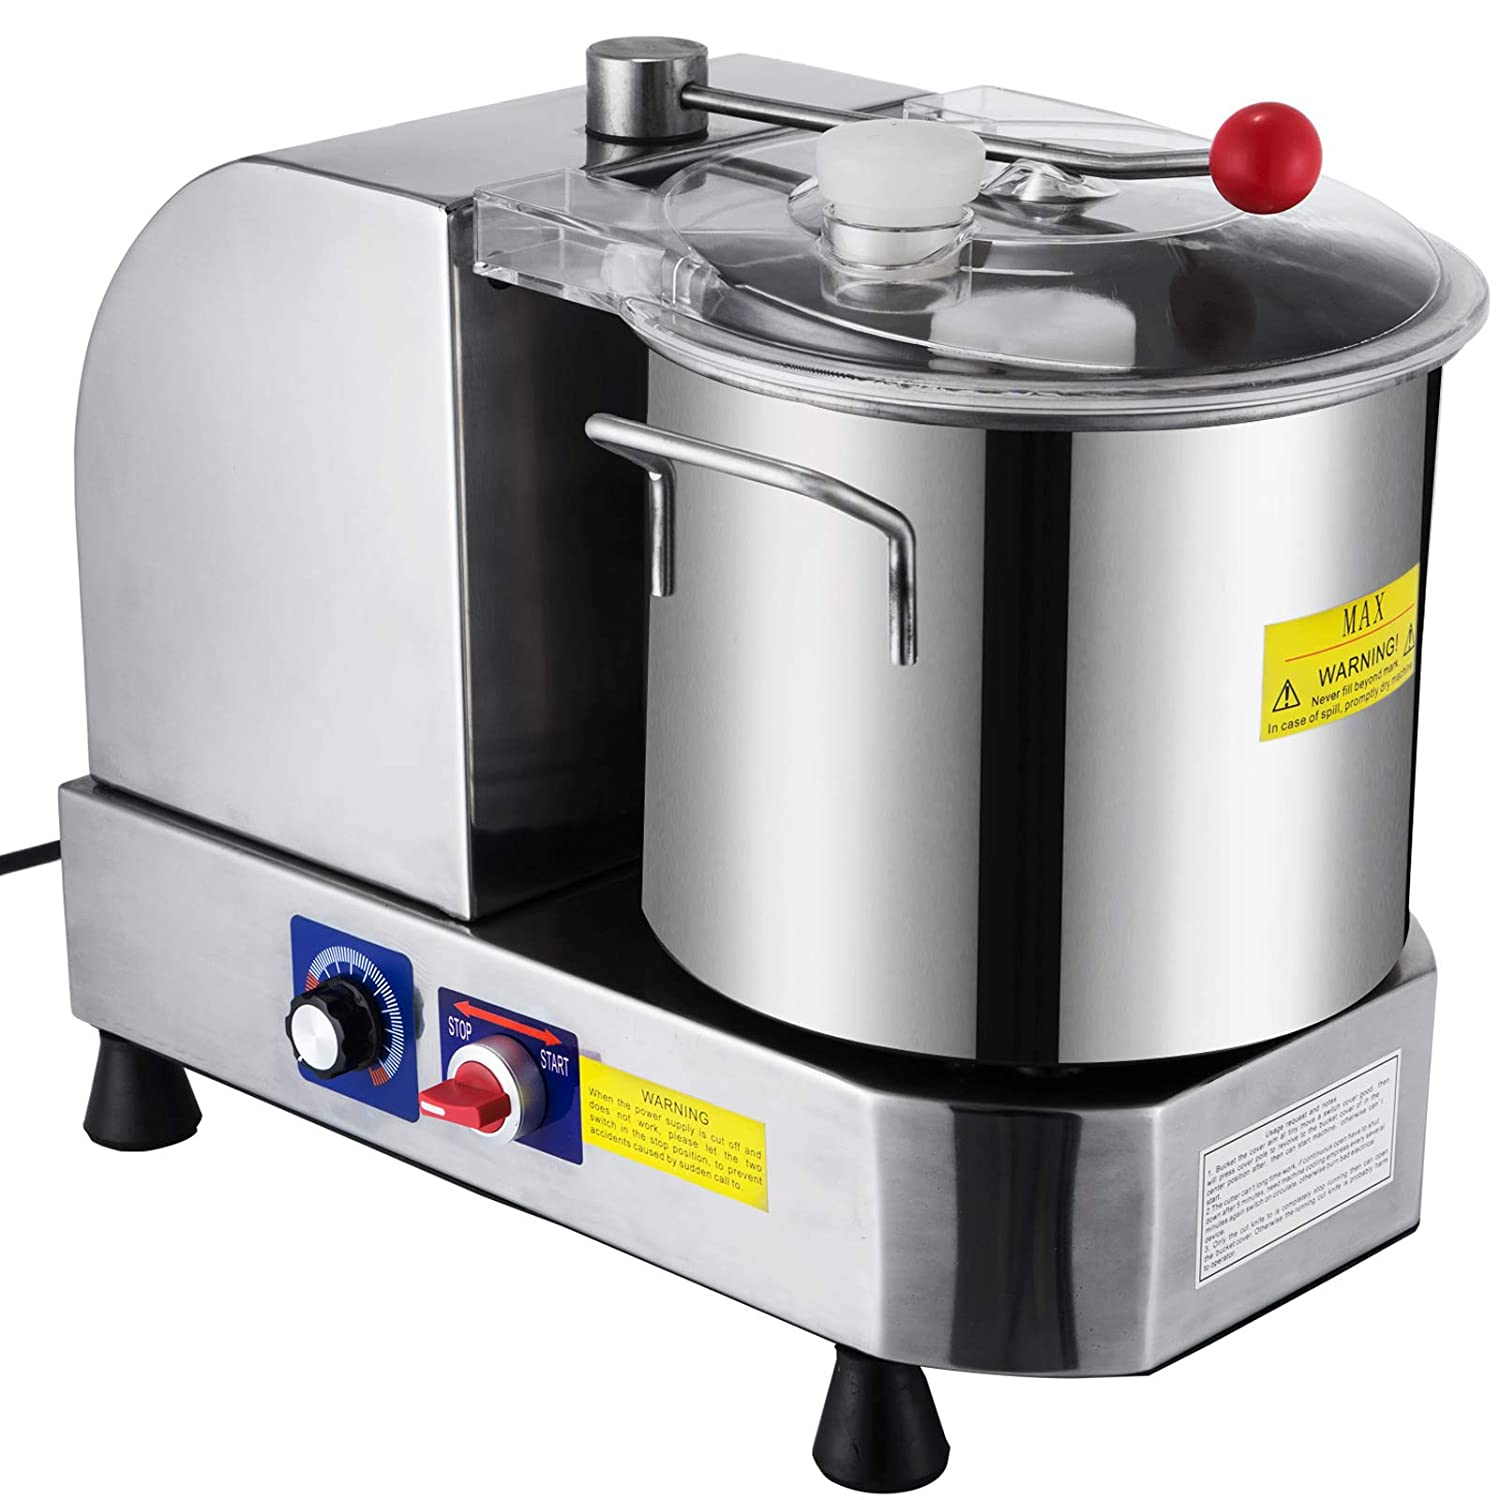 Happybuy Commercial Food Cutter 700W Food Cutter Mixer Machine 850/2000 RPM Food Grinder Commercial for Meat Vegetables and Fruit (Bowl Capacity 9L)